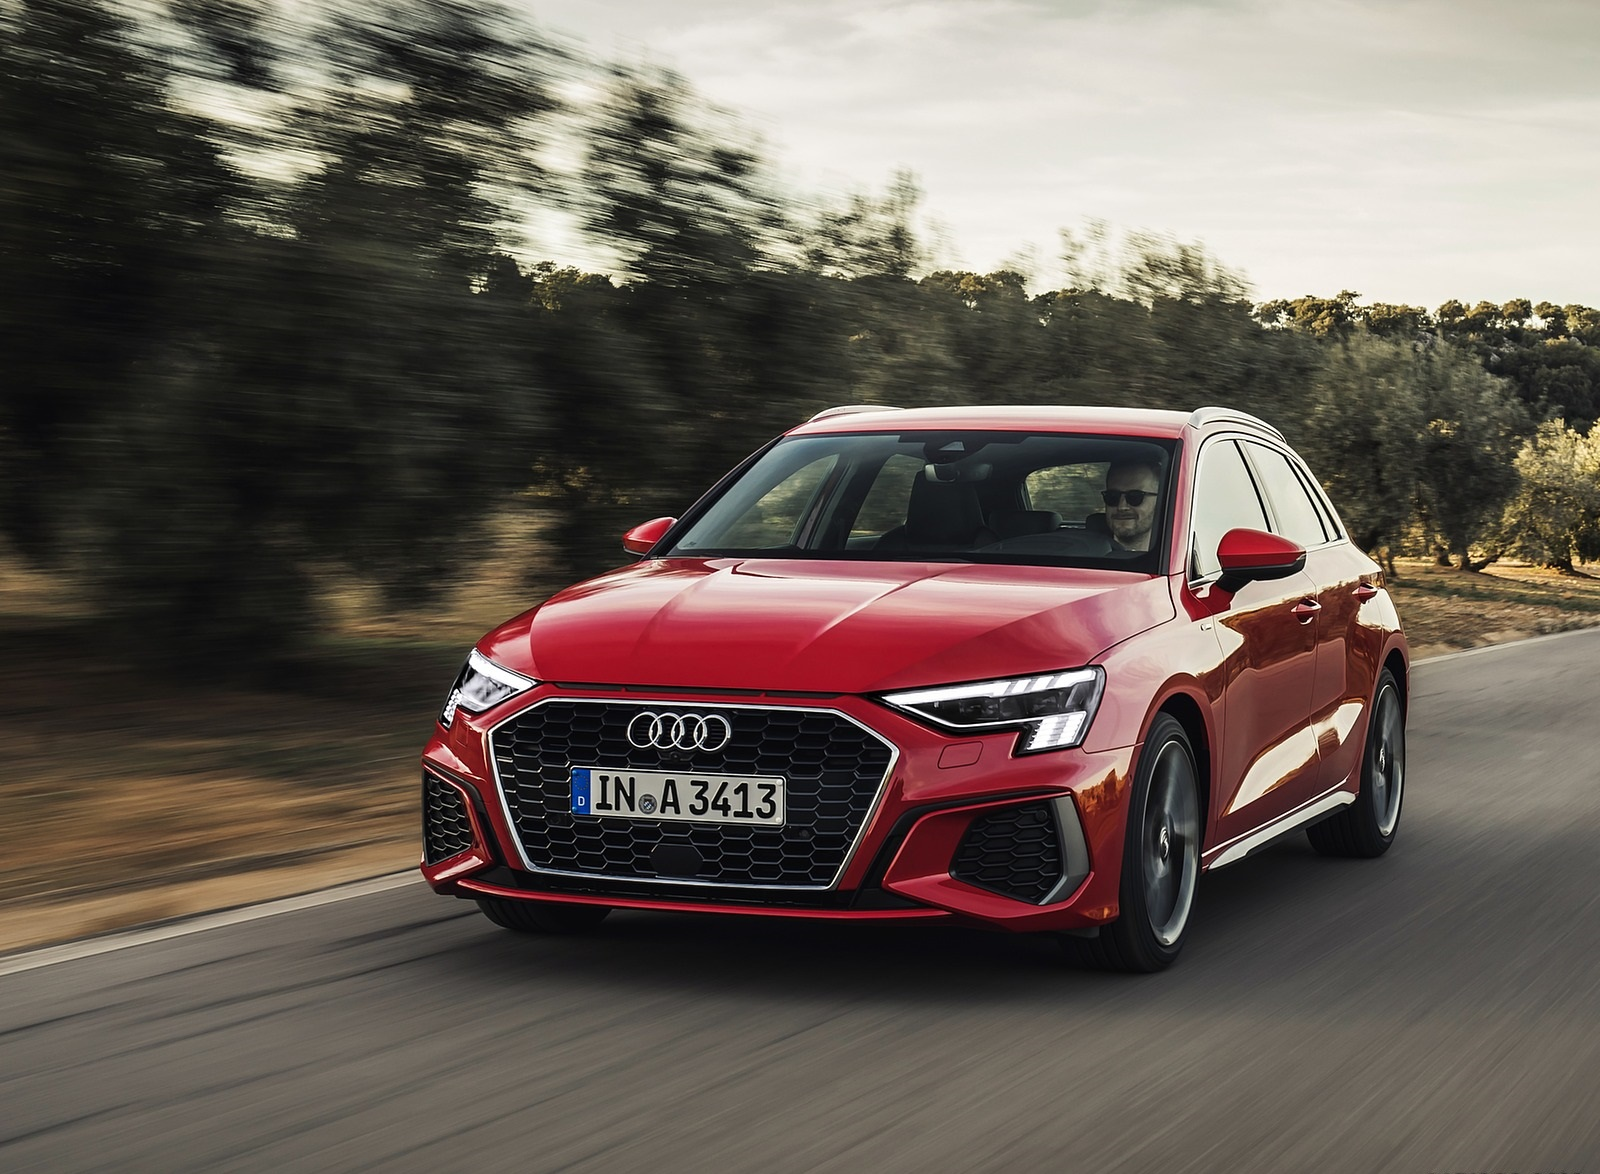 2021 Audi A3 Sportback (Color: Tango Red) Front Three-Quarter Wallpapers (1)